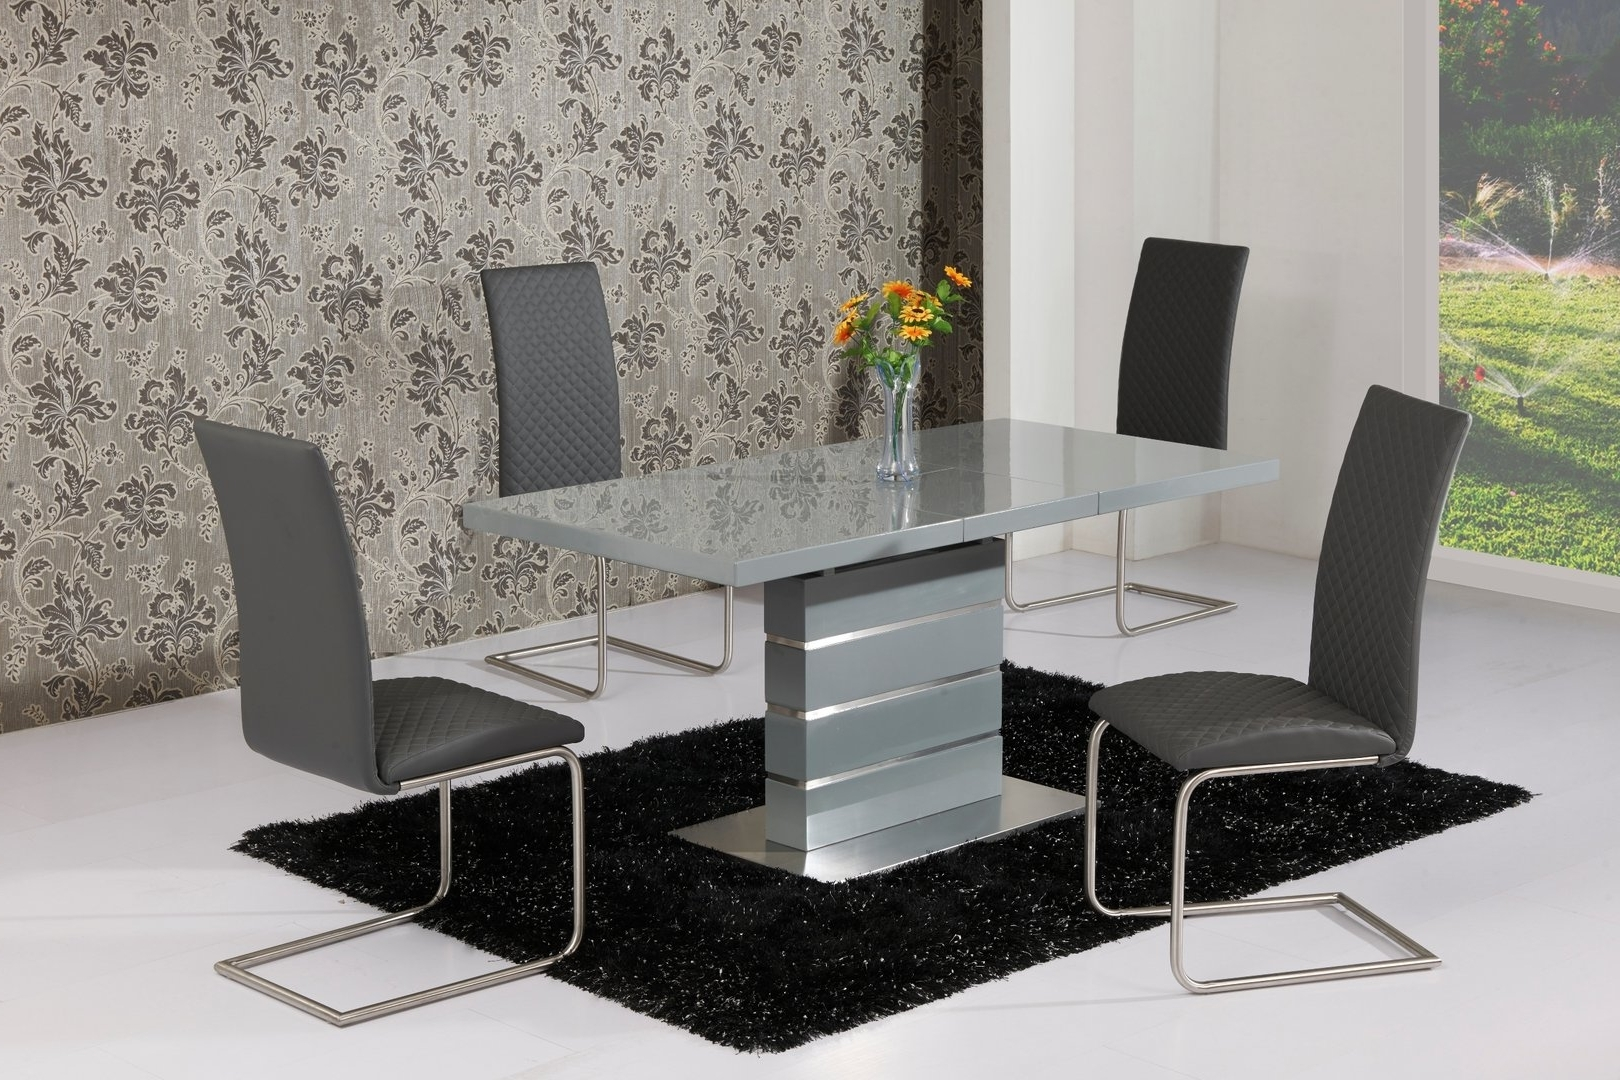 Extending Grey High Gloss Dining Table And 4 Grey Chairs Regarding Most Recently Released Dining Tables With Grey Chairs (View 3 of 25)